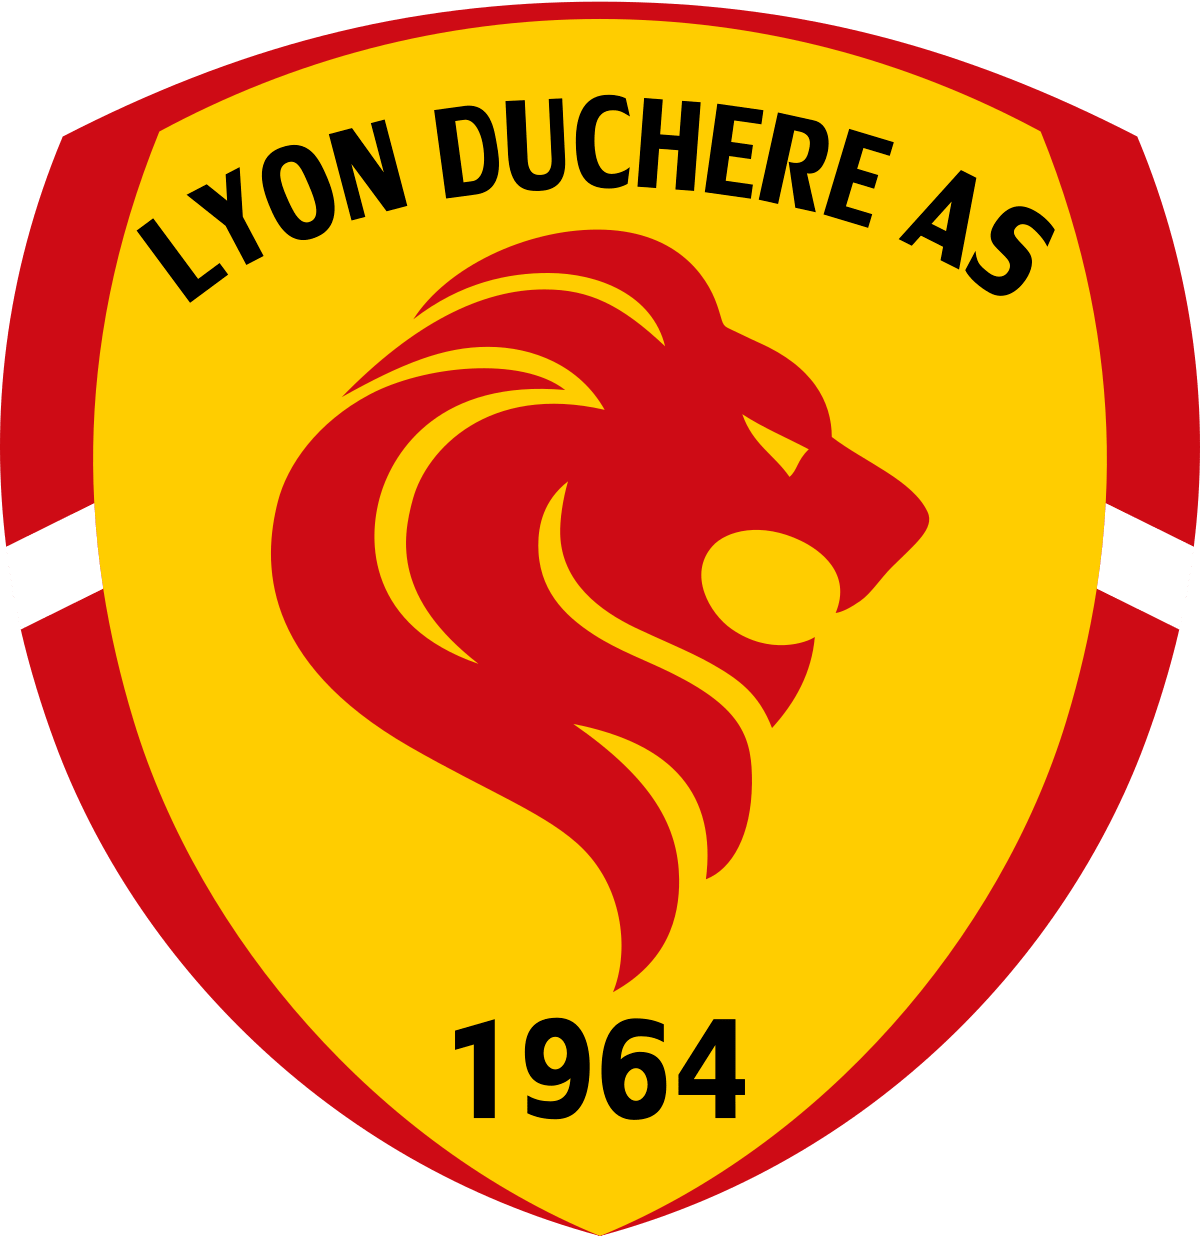 Lyon Duchere AS